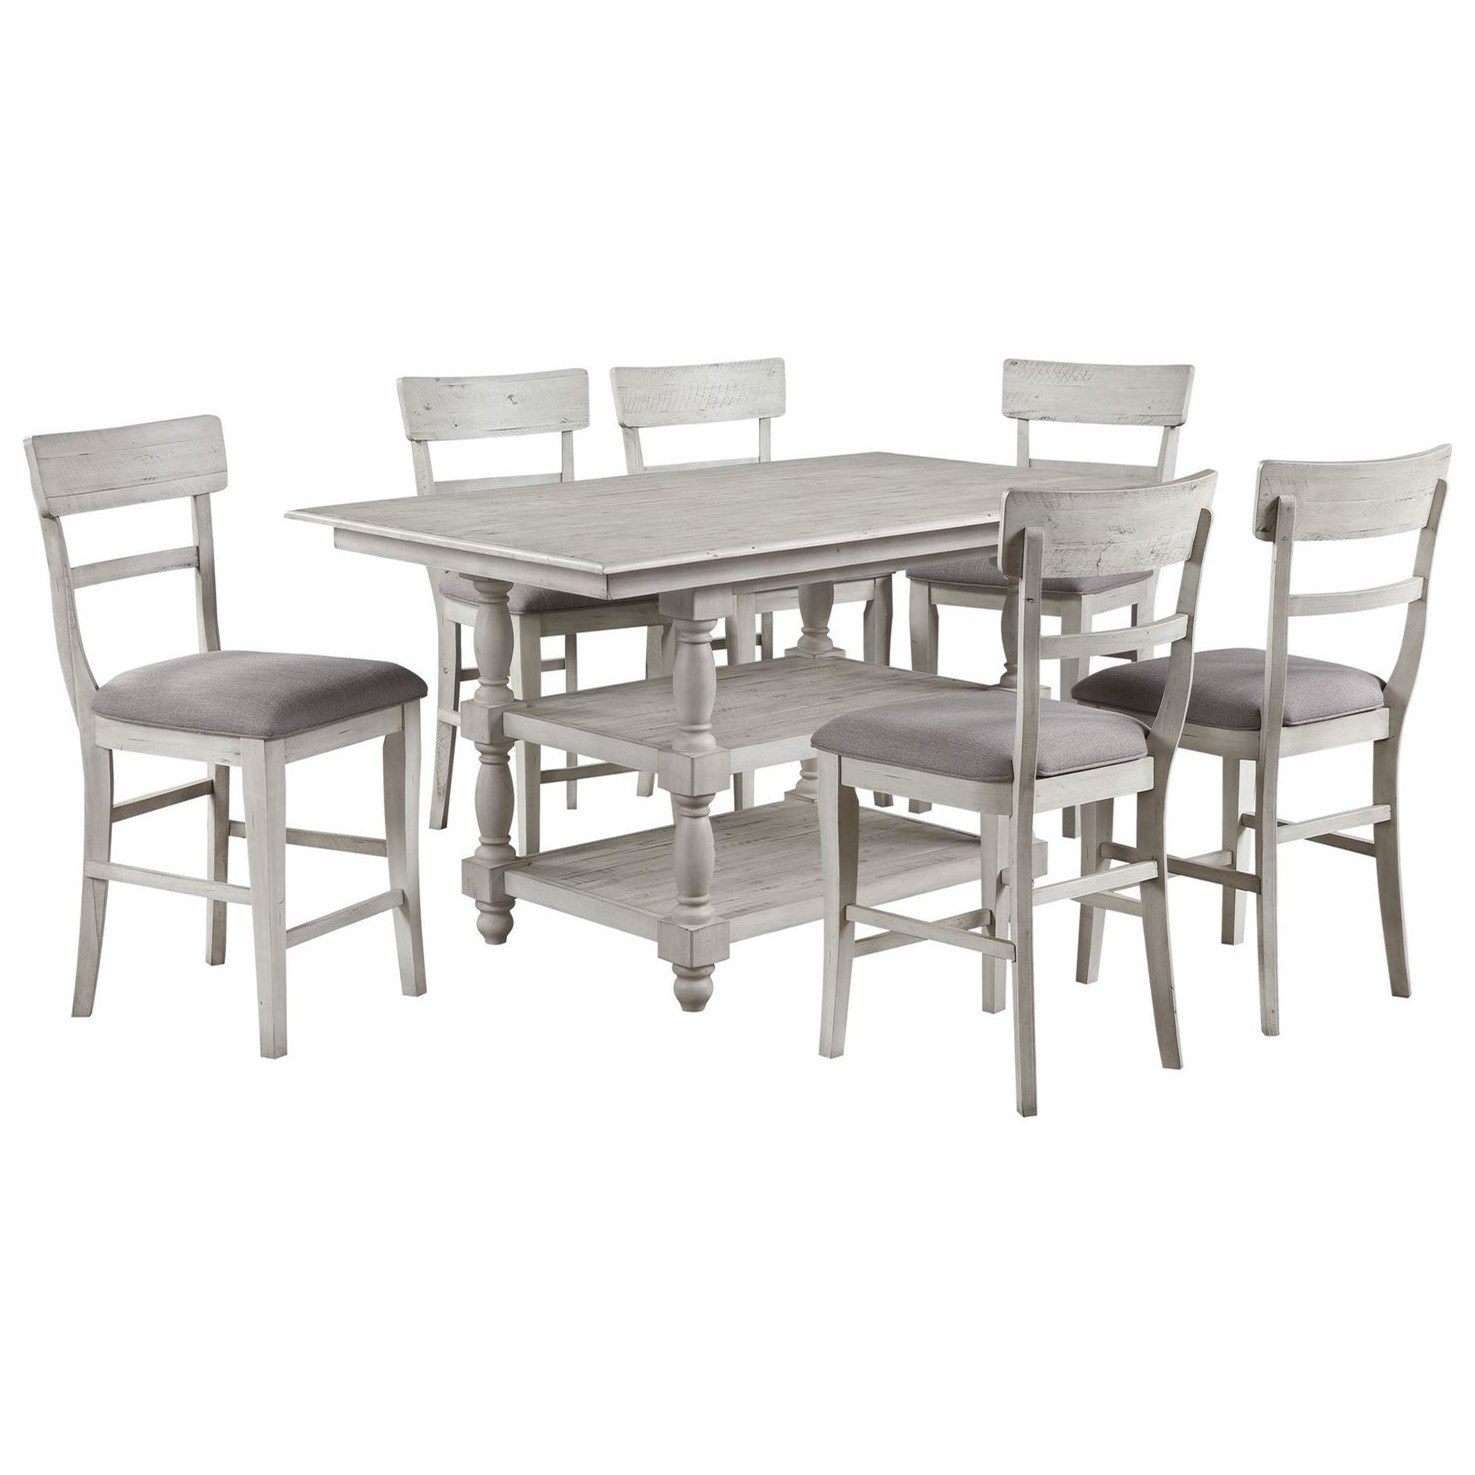 Santa Clara 7-Piece Table and Chair Set by Coast to Coast Imports at Baer's Furniture